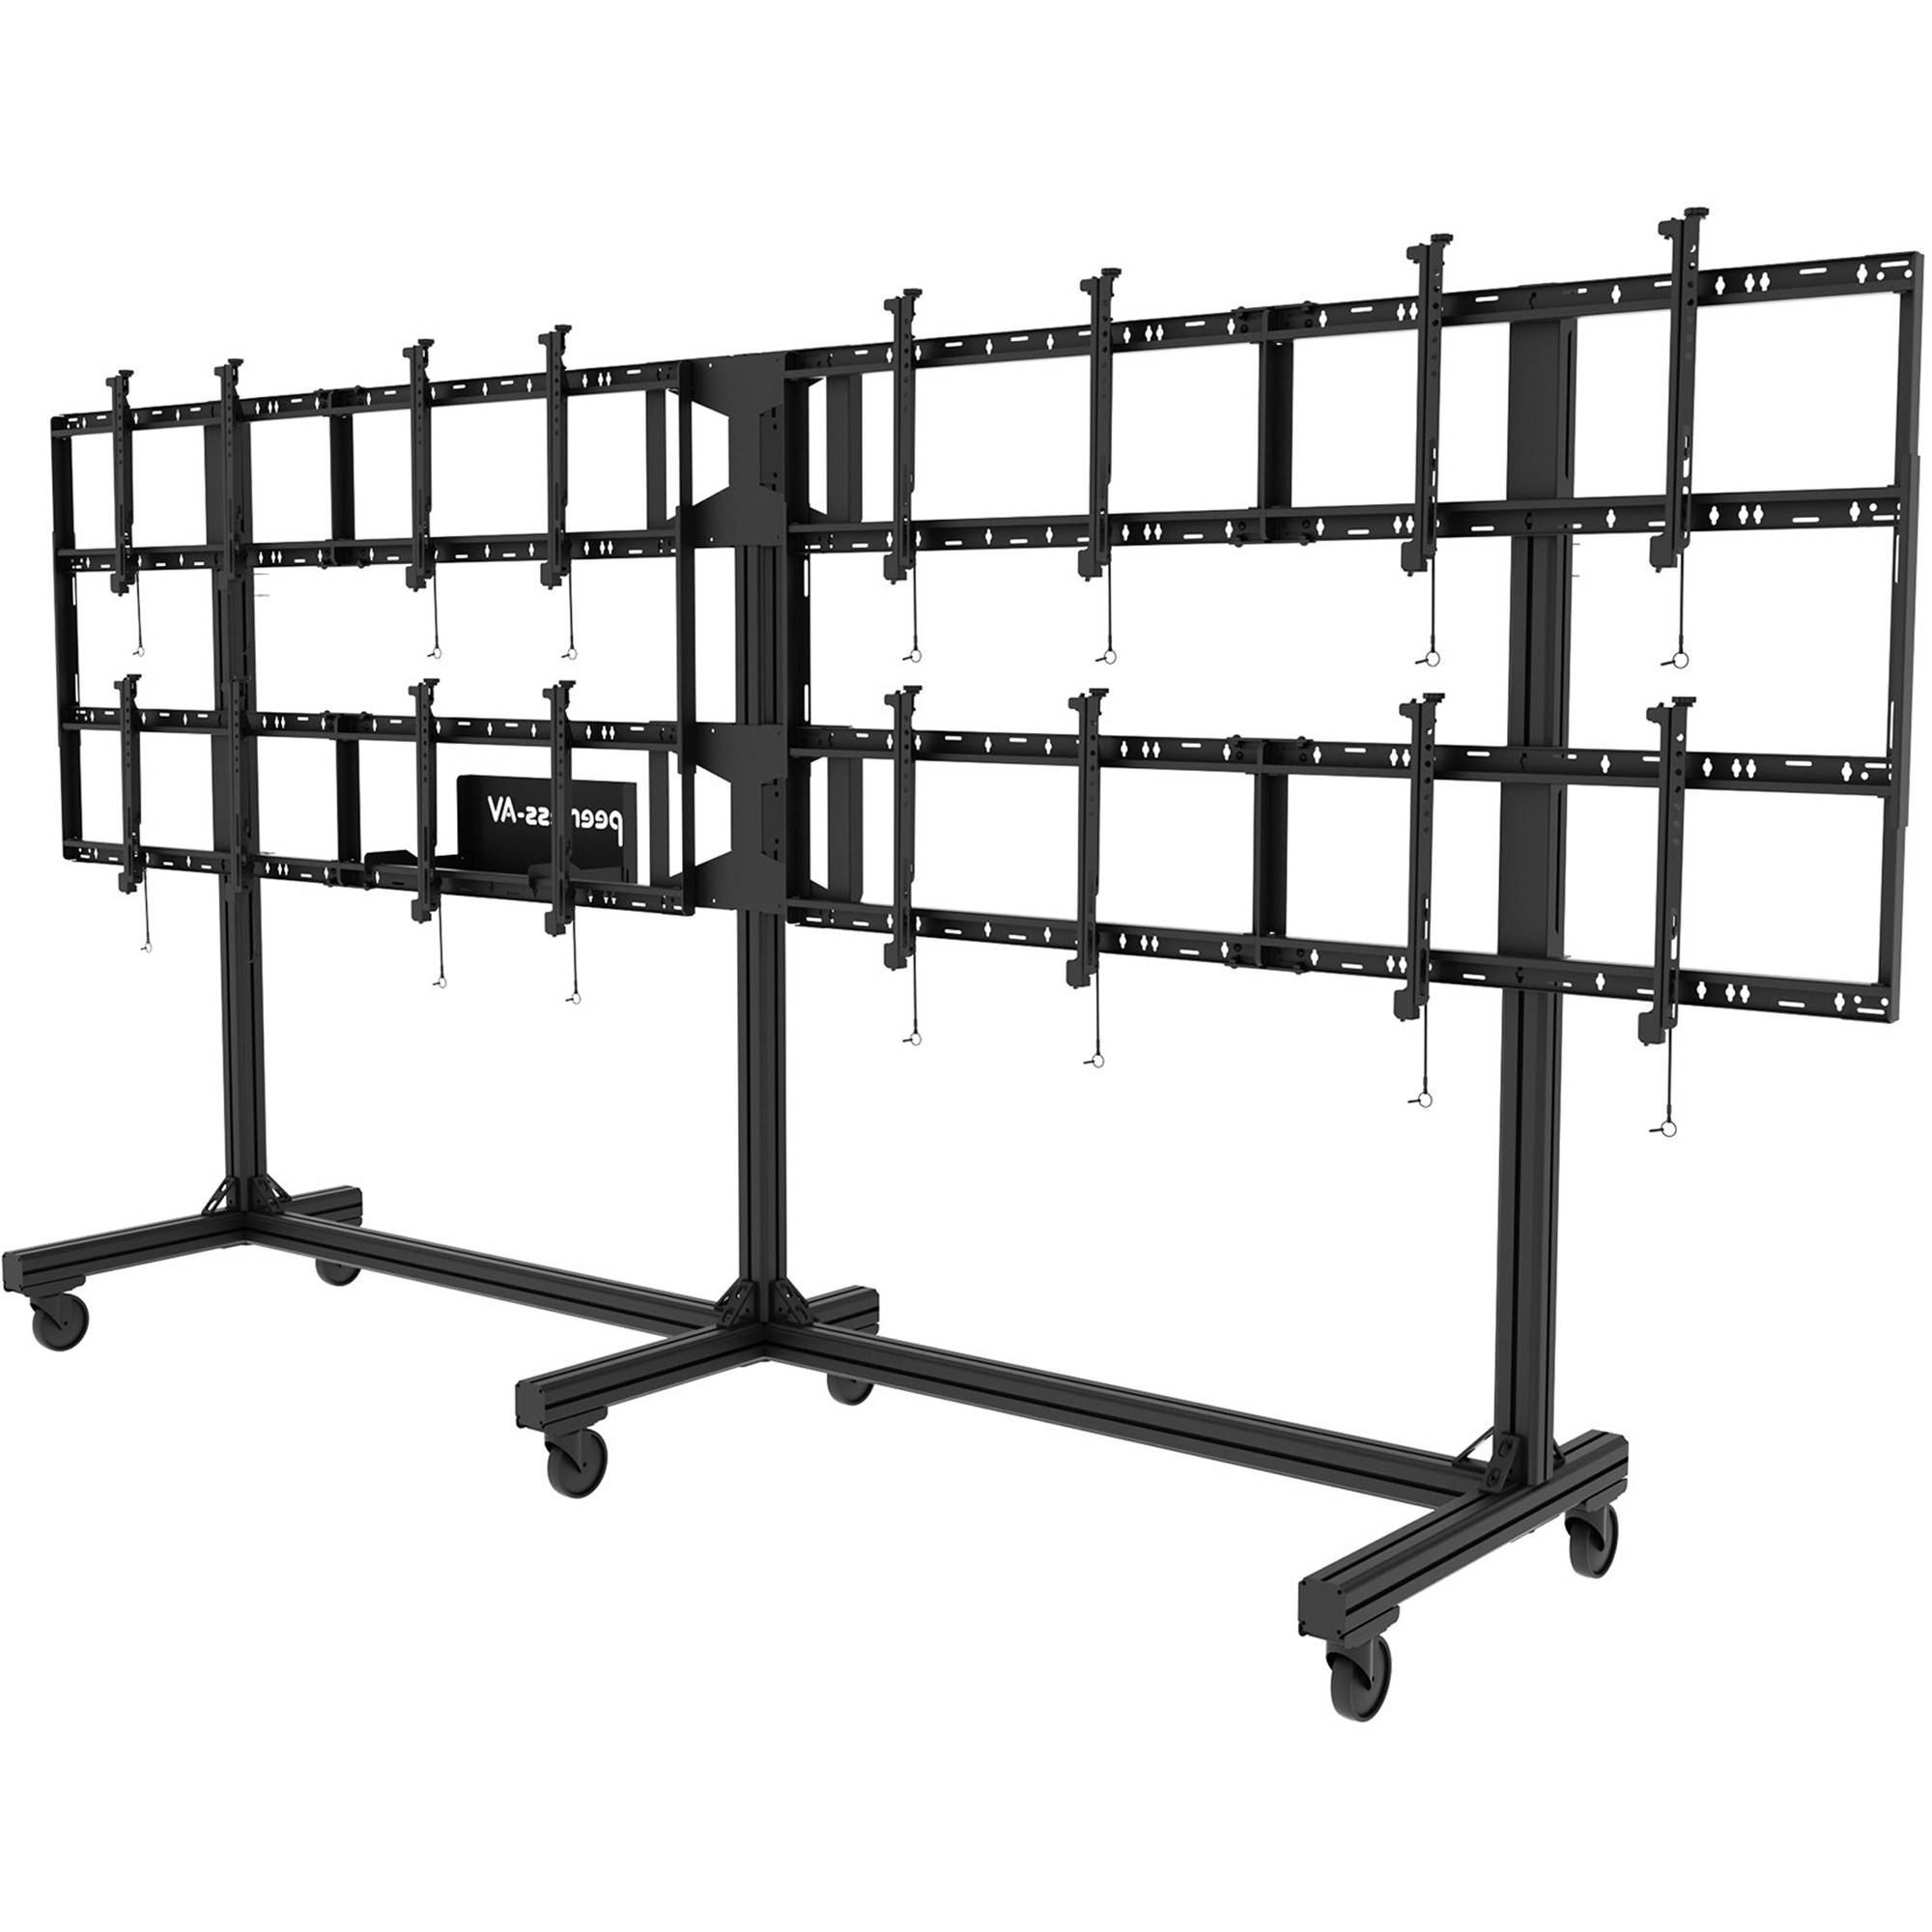 Peerless Av Portable Video Wall Cart For 46 To Ds C555 4x2 B Amp H